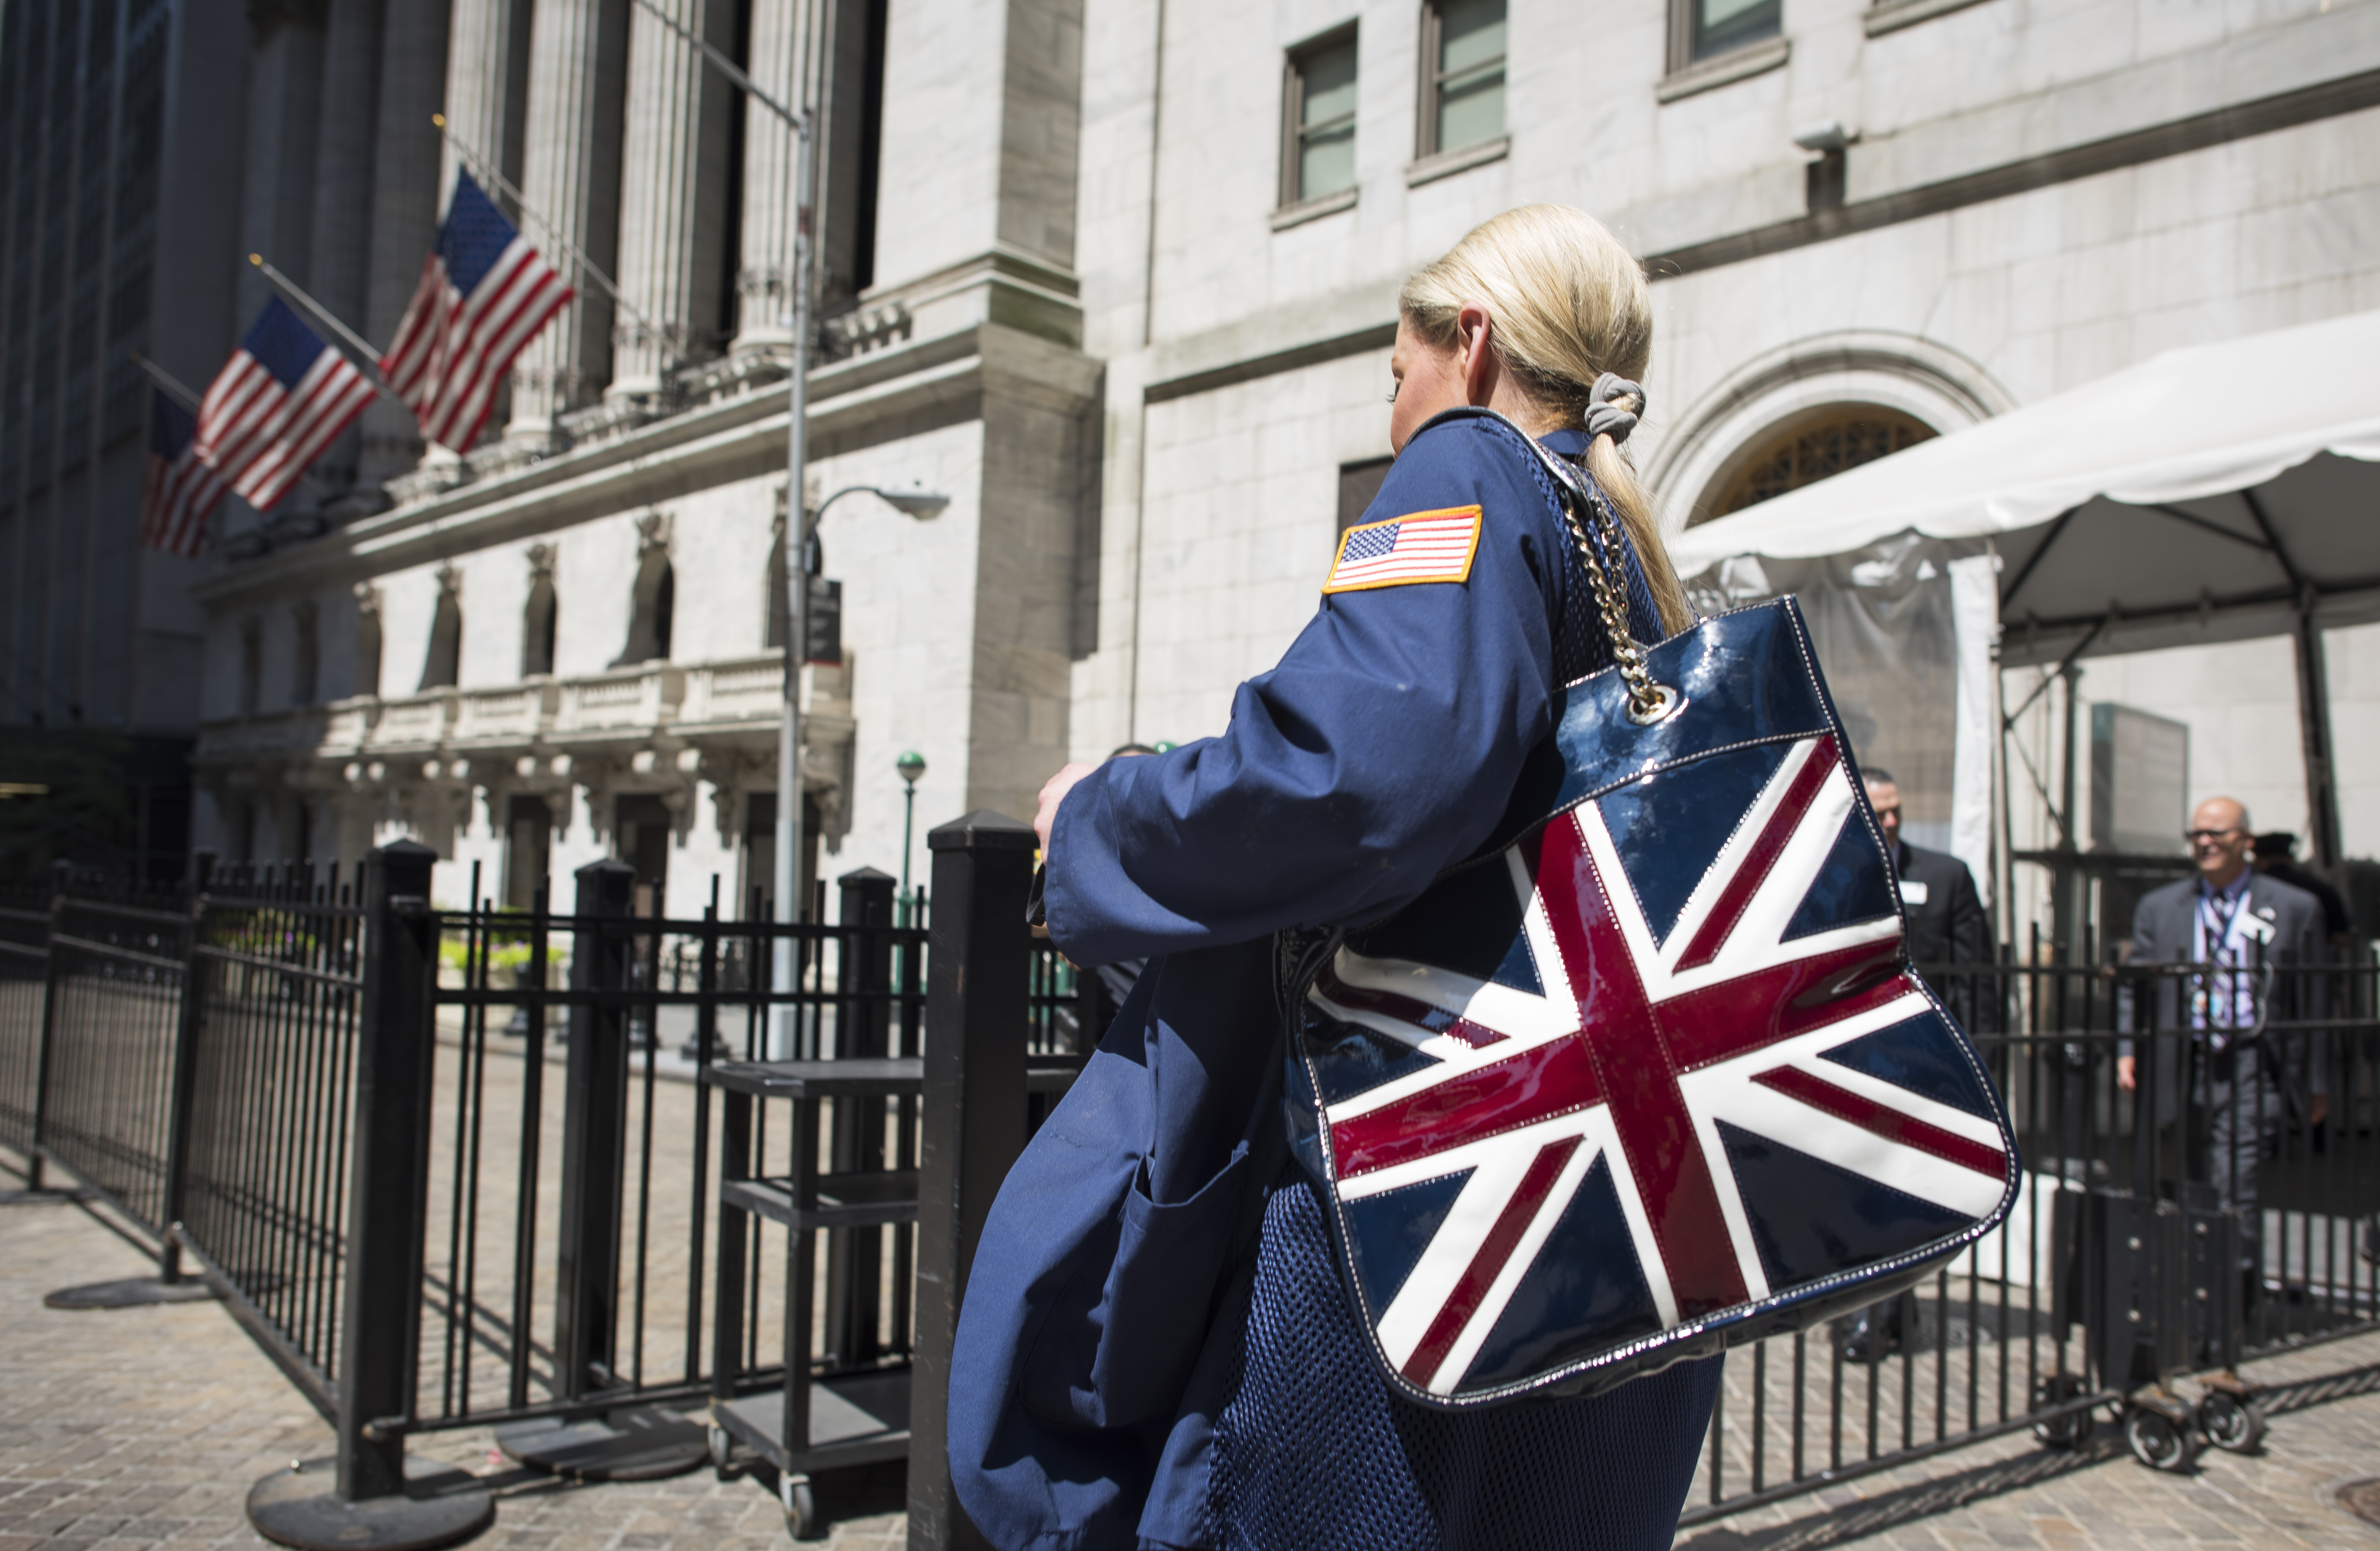 A trader with Union Jack bag enters the New York Stock Exchange a day after Britain voted to break out of the European Union. It could be worrisome if Brexit marks an end to the economic integration and open markets that have helped power sales at companies.